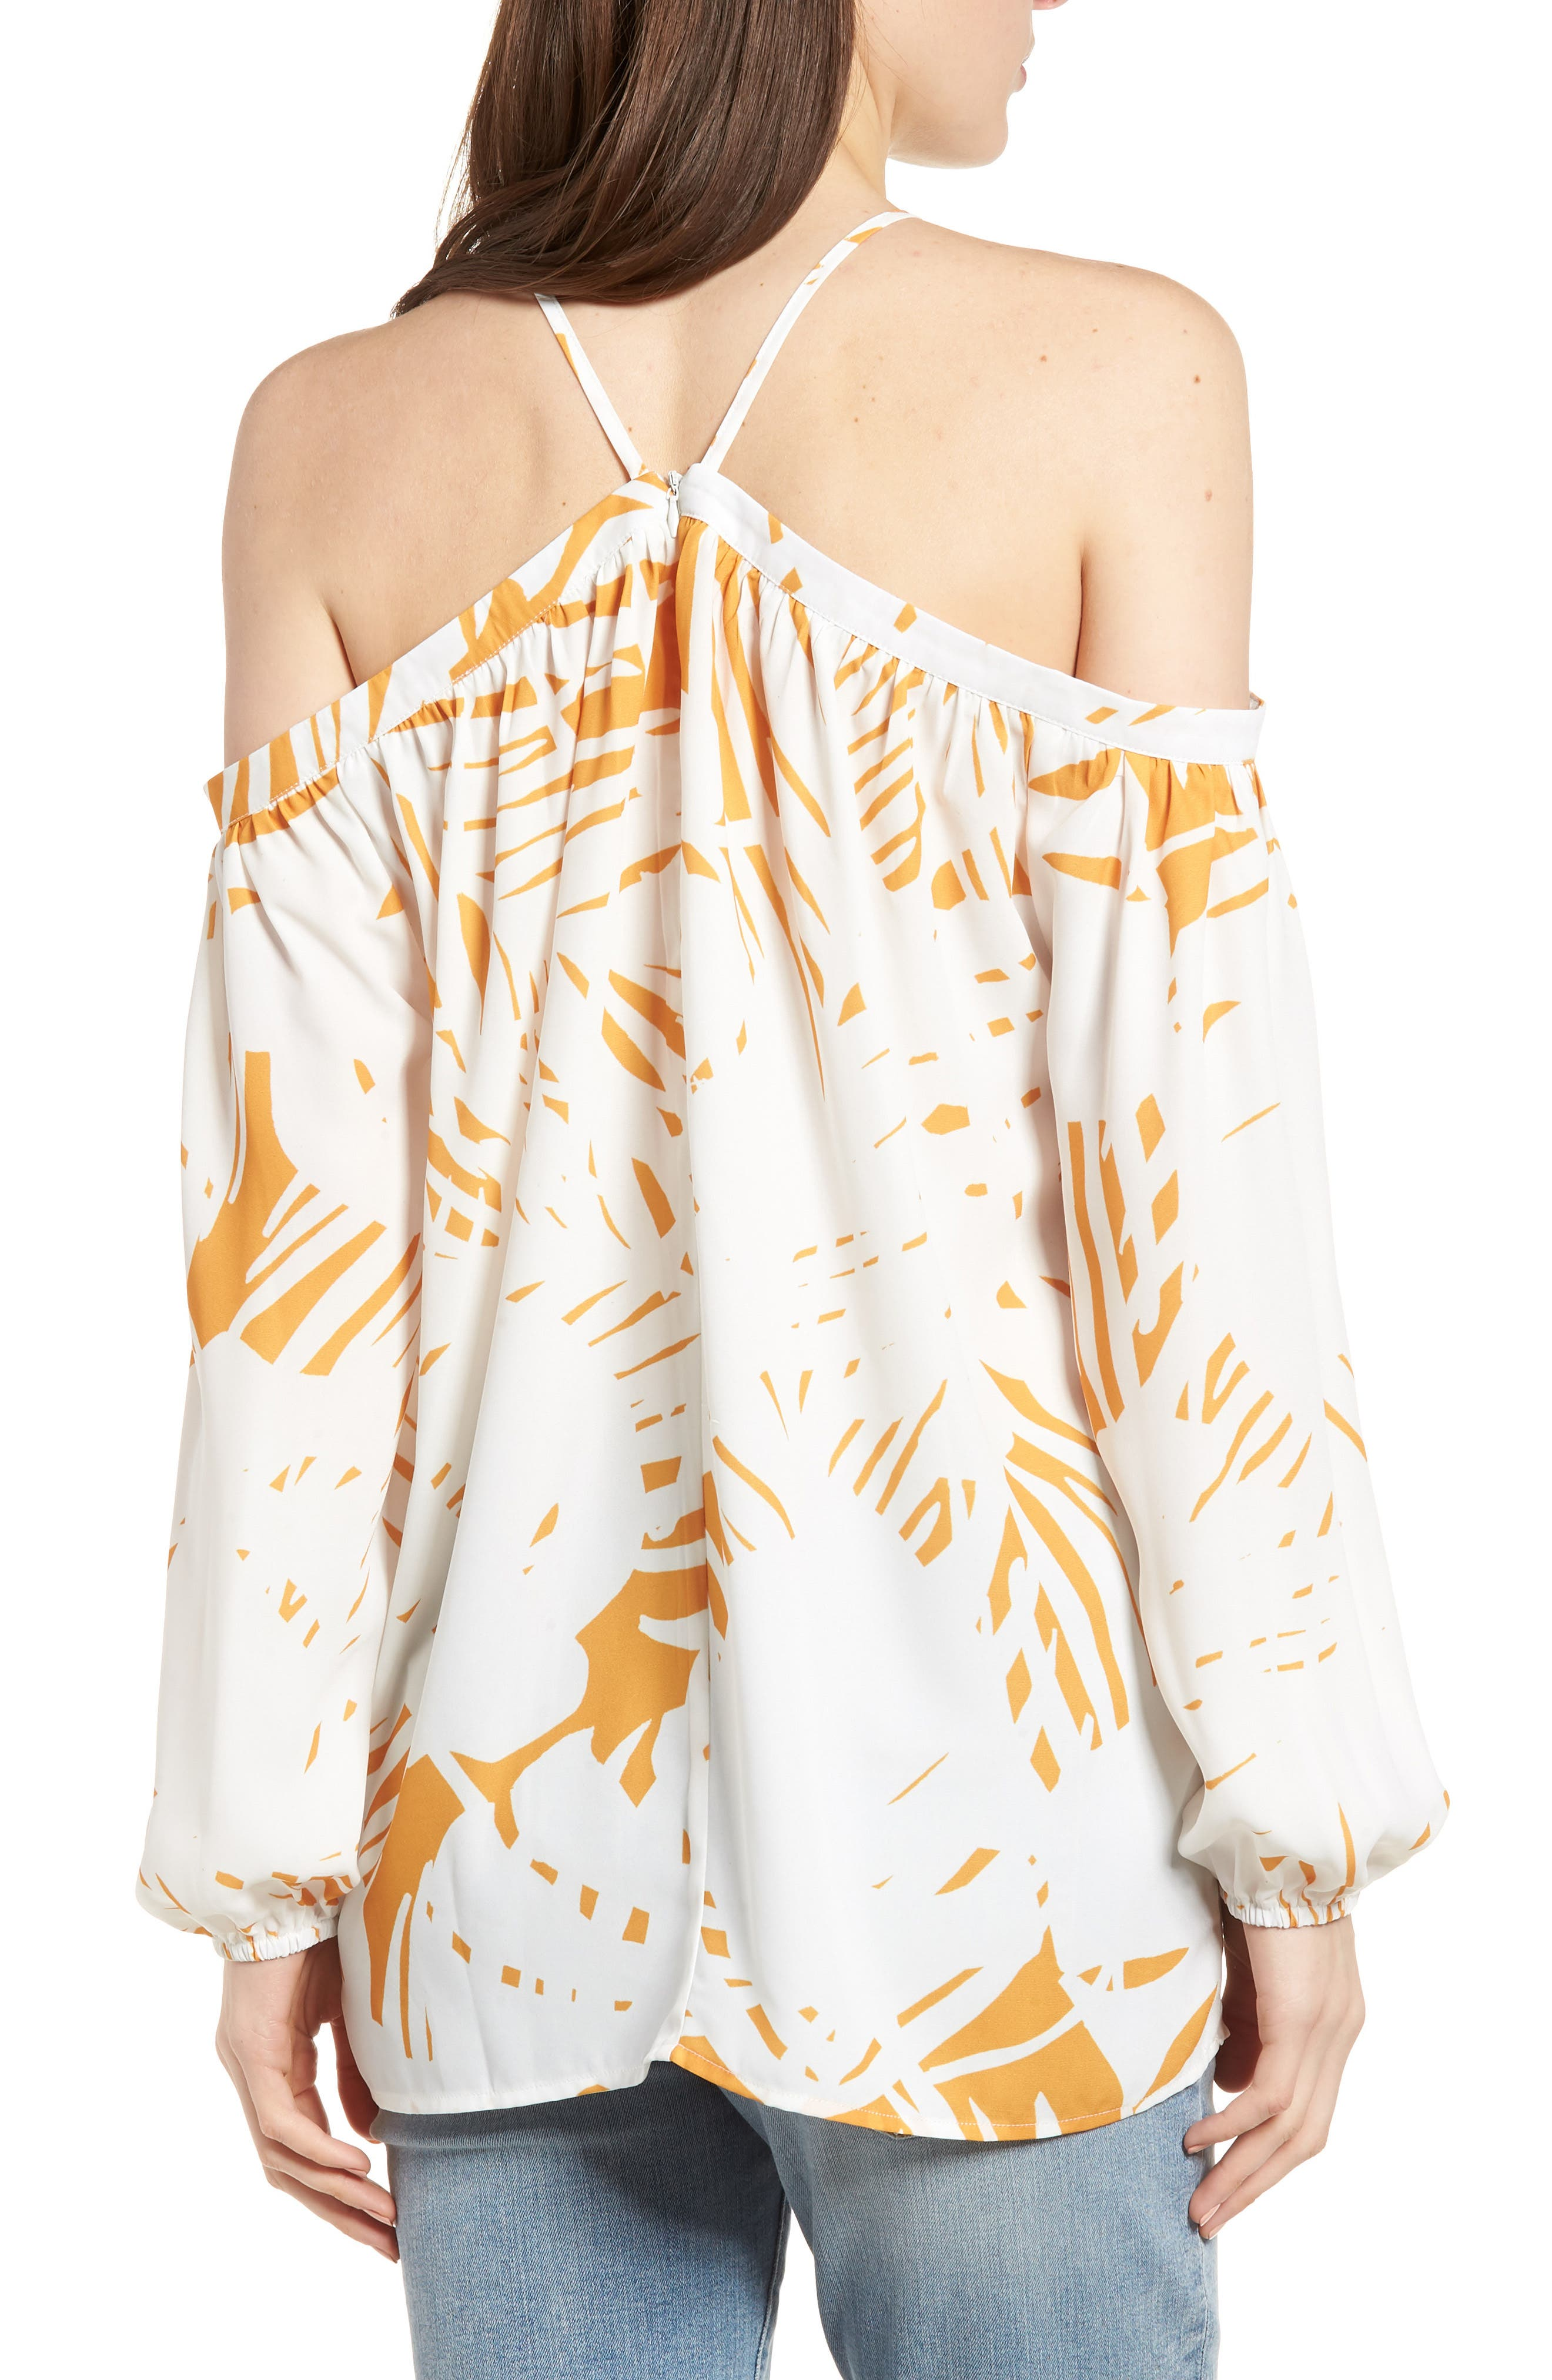 Bishop + Young Ana Palm Print Off the Shoulder Top,                             Alternate thumbnail 2, color,                             400